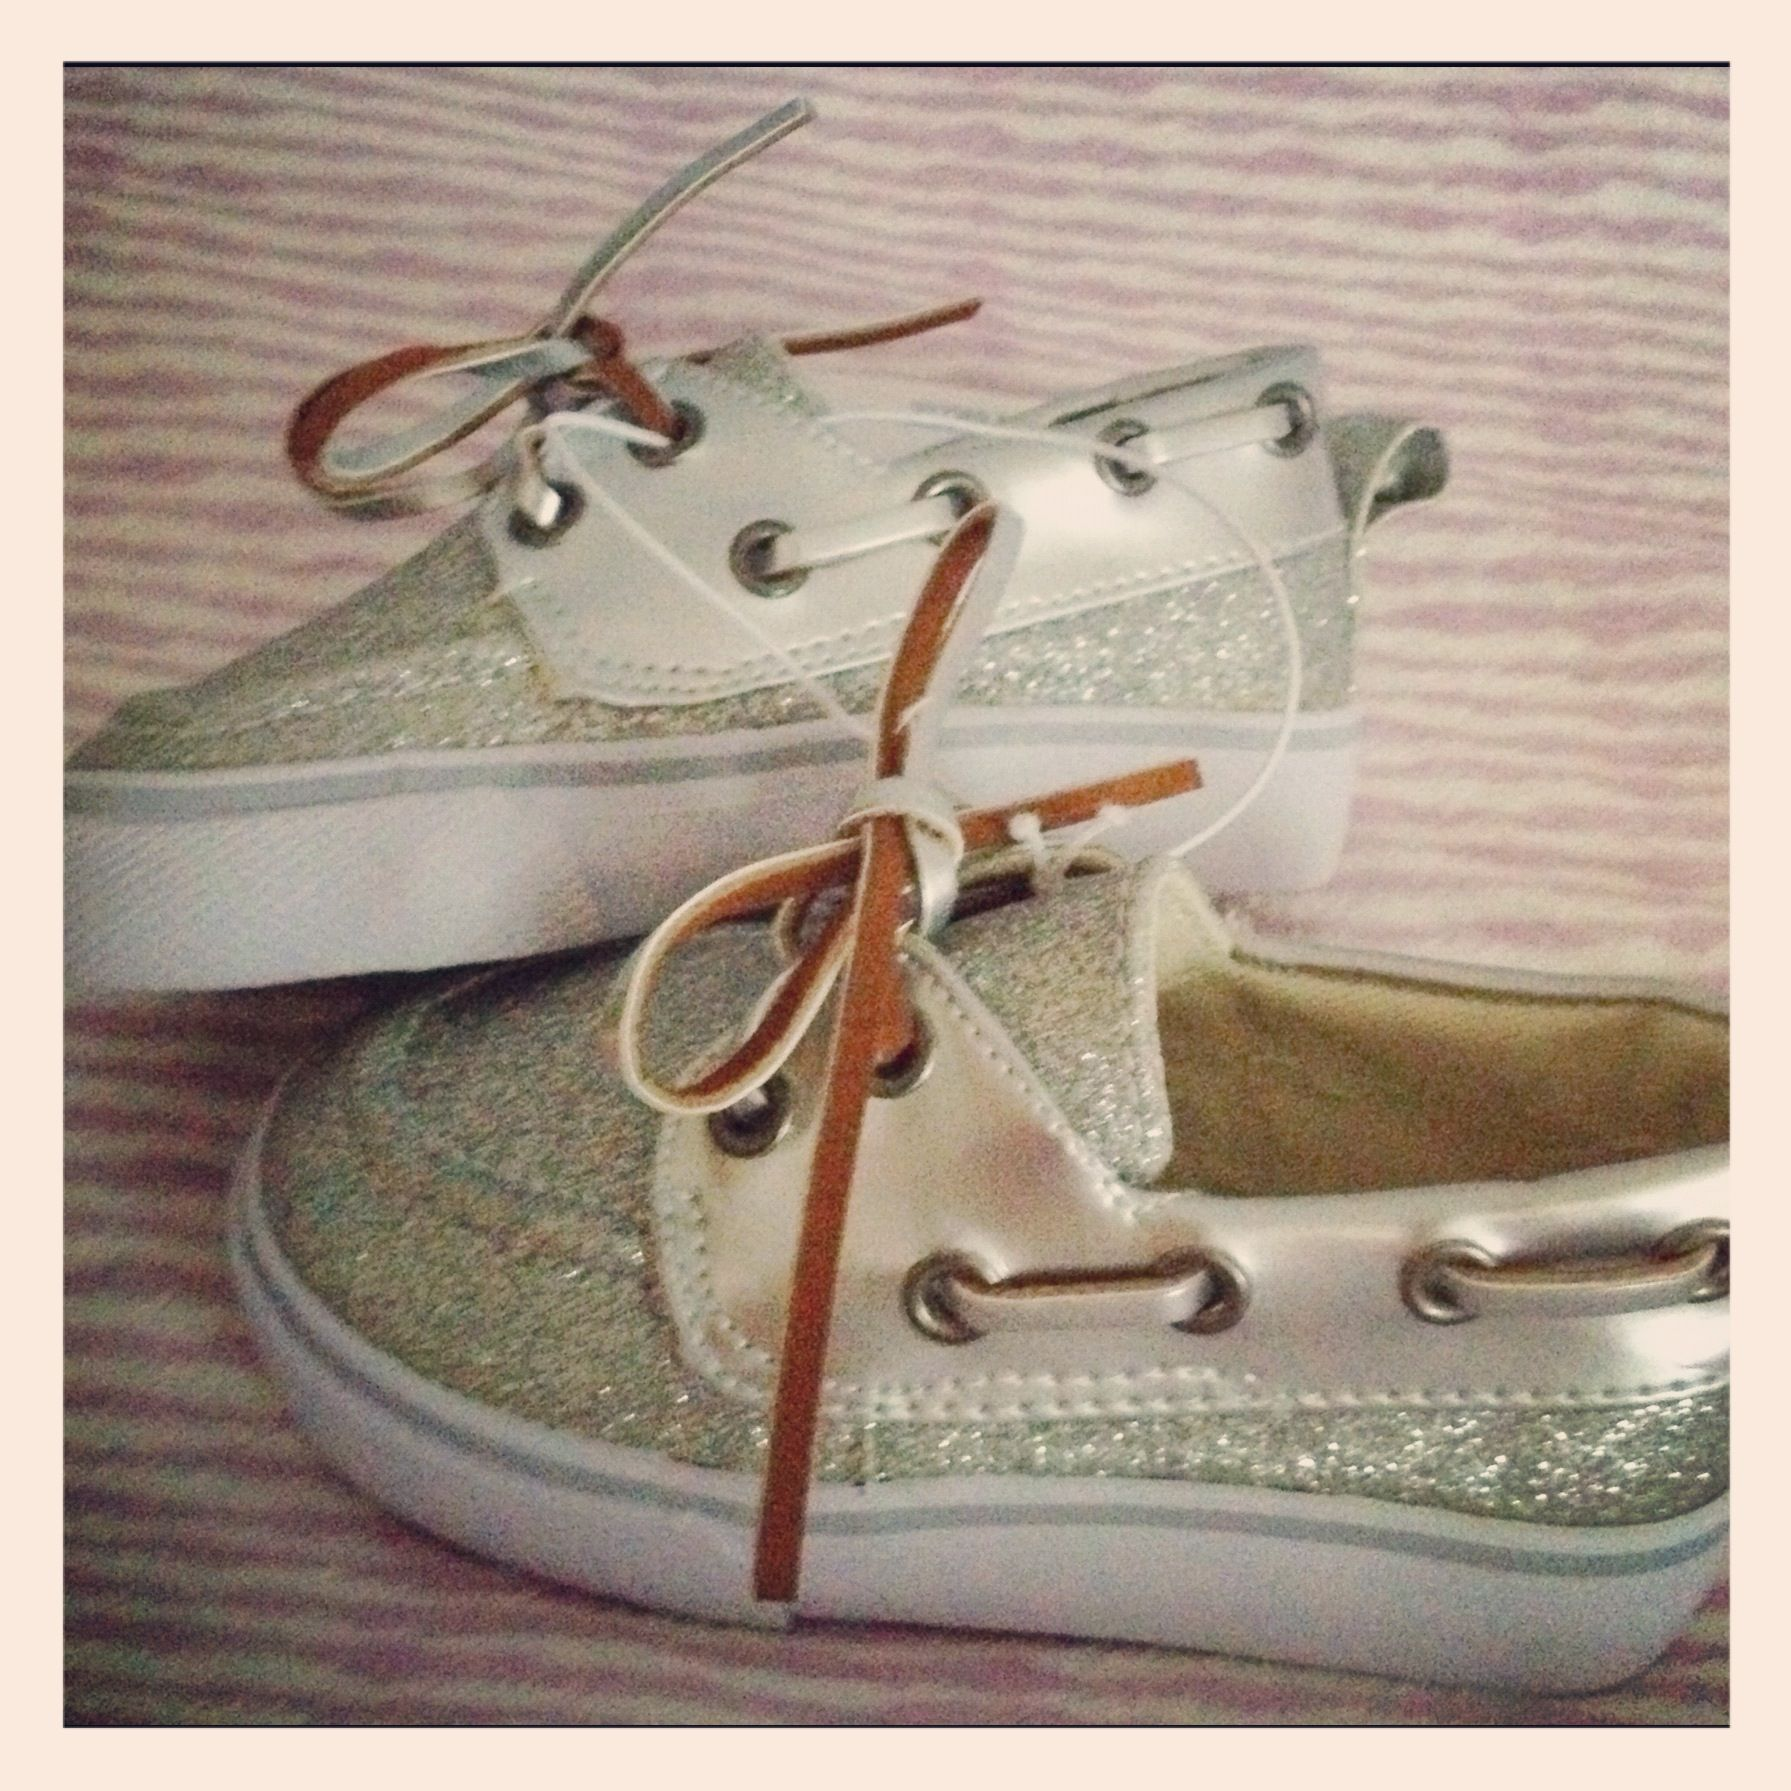 Bling baby sperrys purchased at babies r us 3